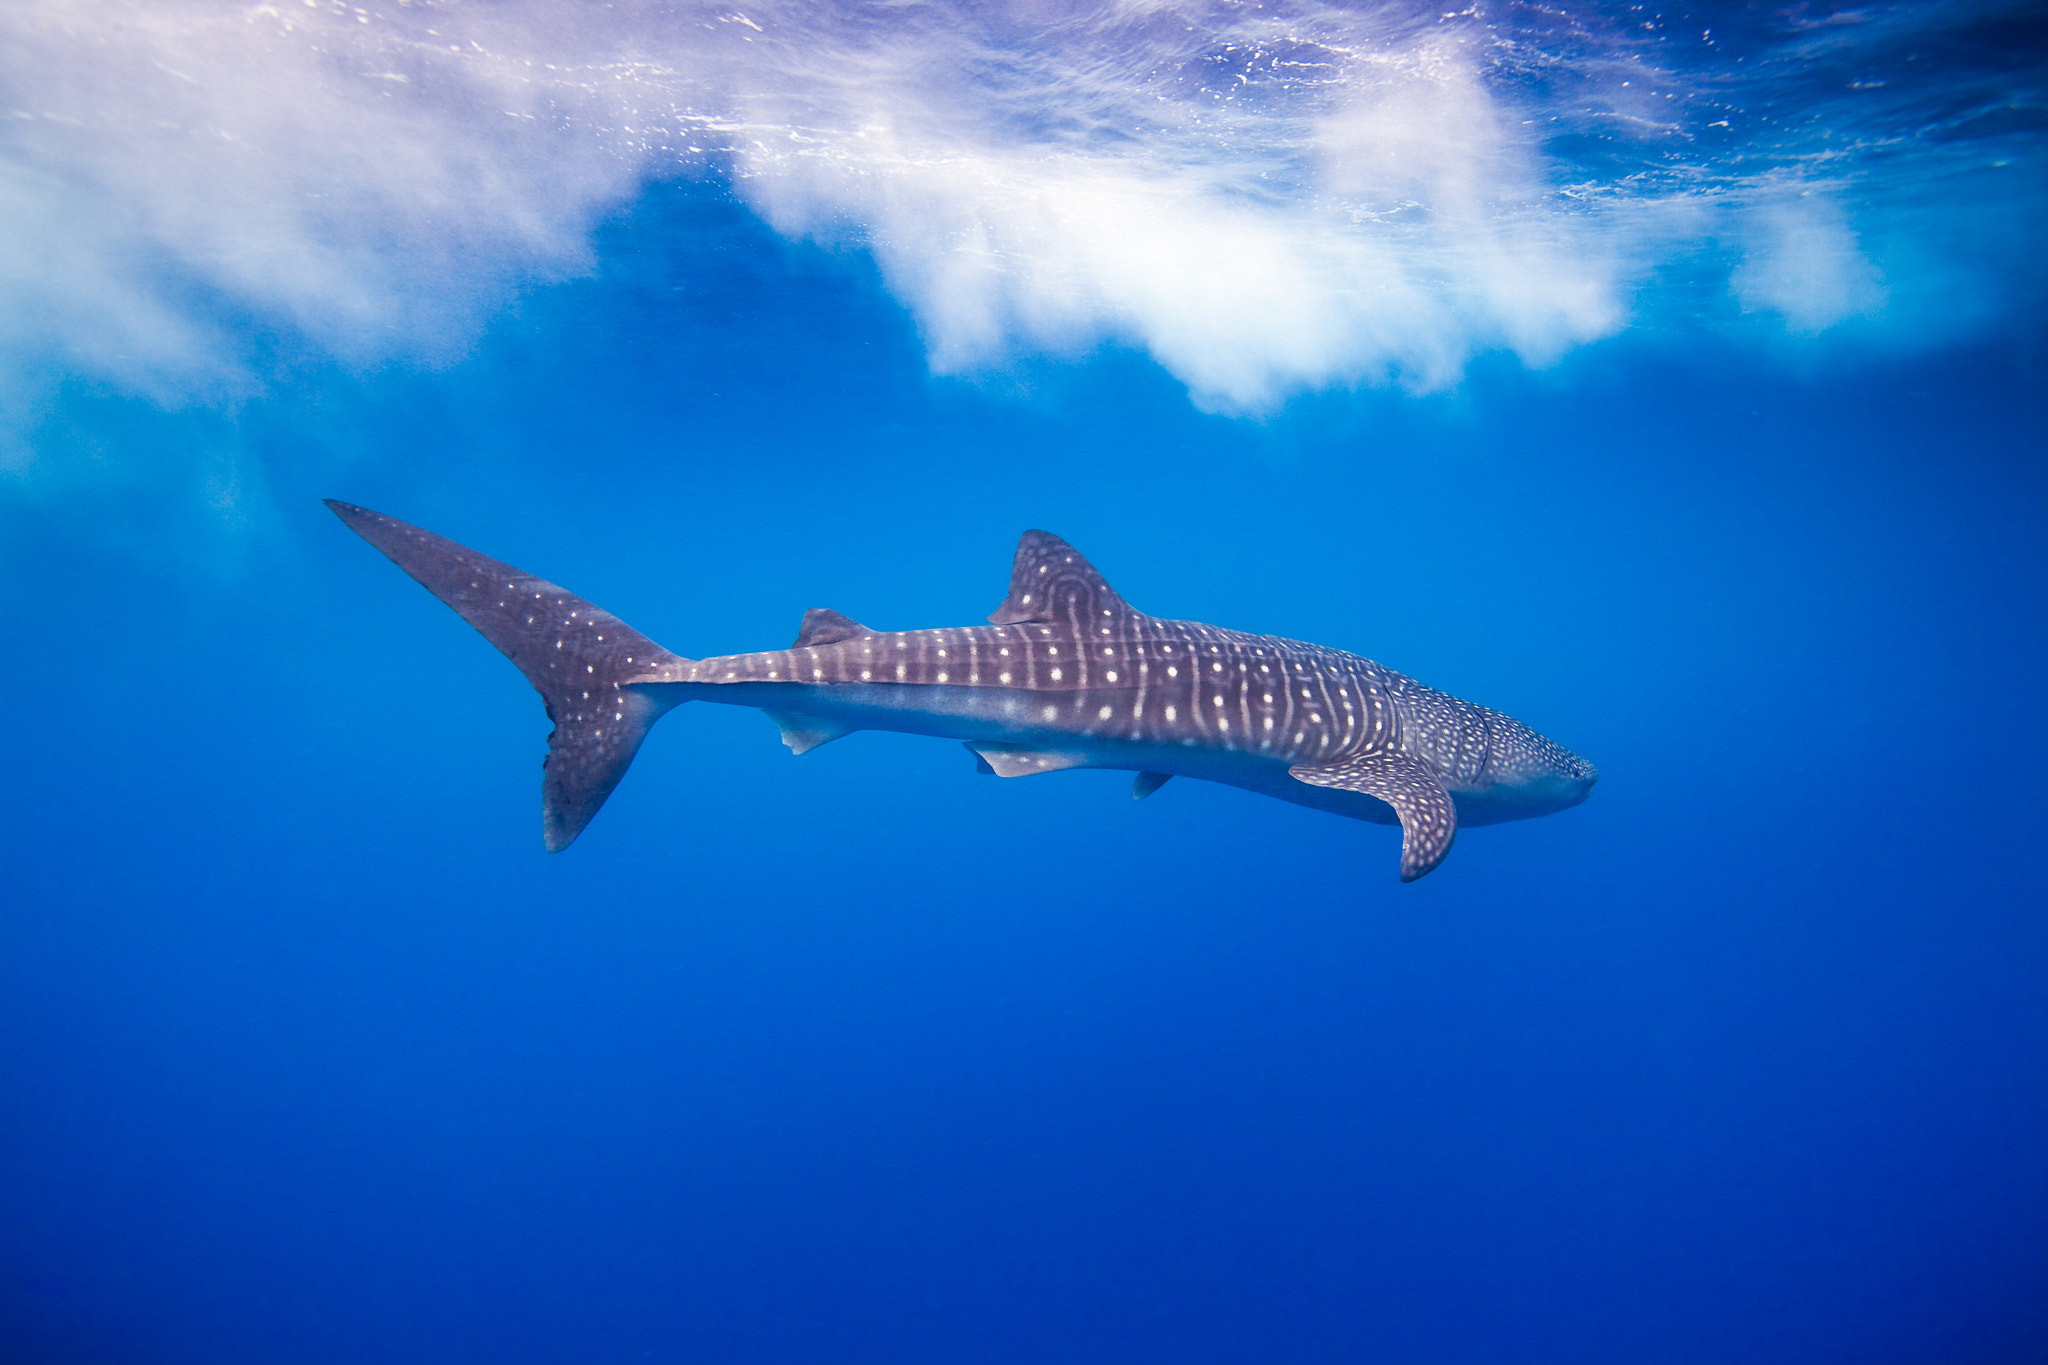 Photograph Whale Shark in the Surf by Tony Rath on 500px